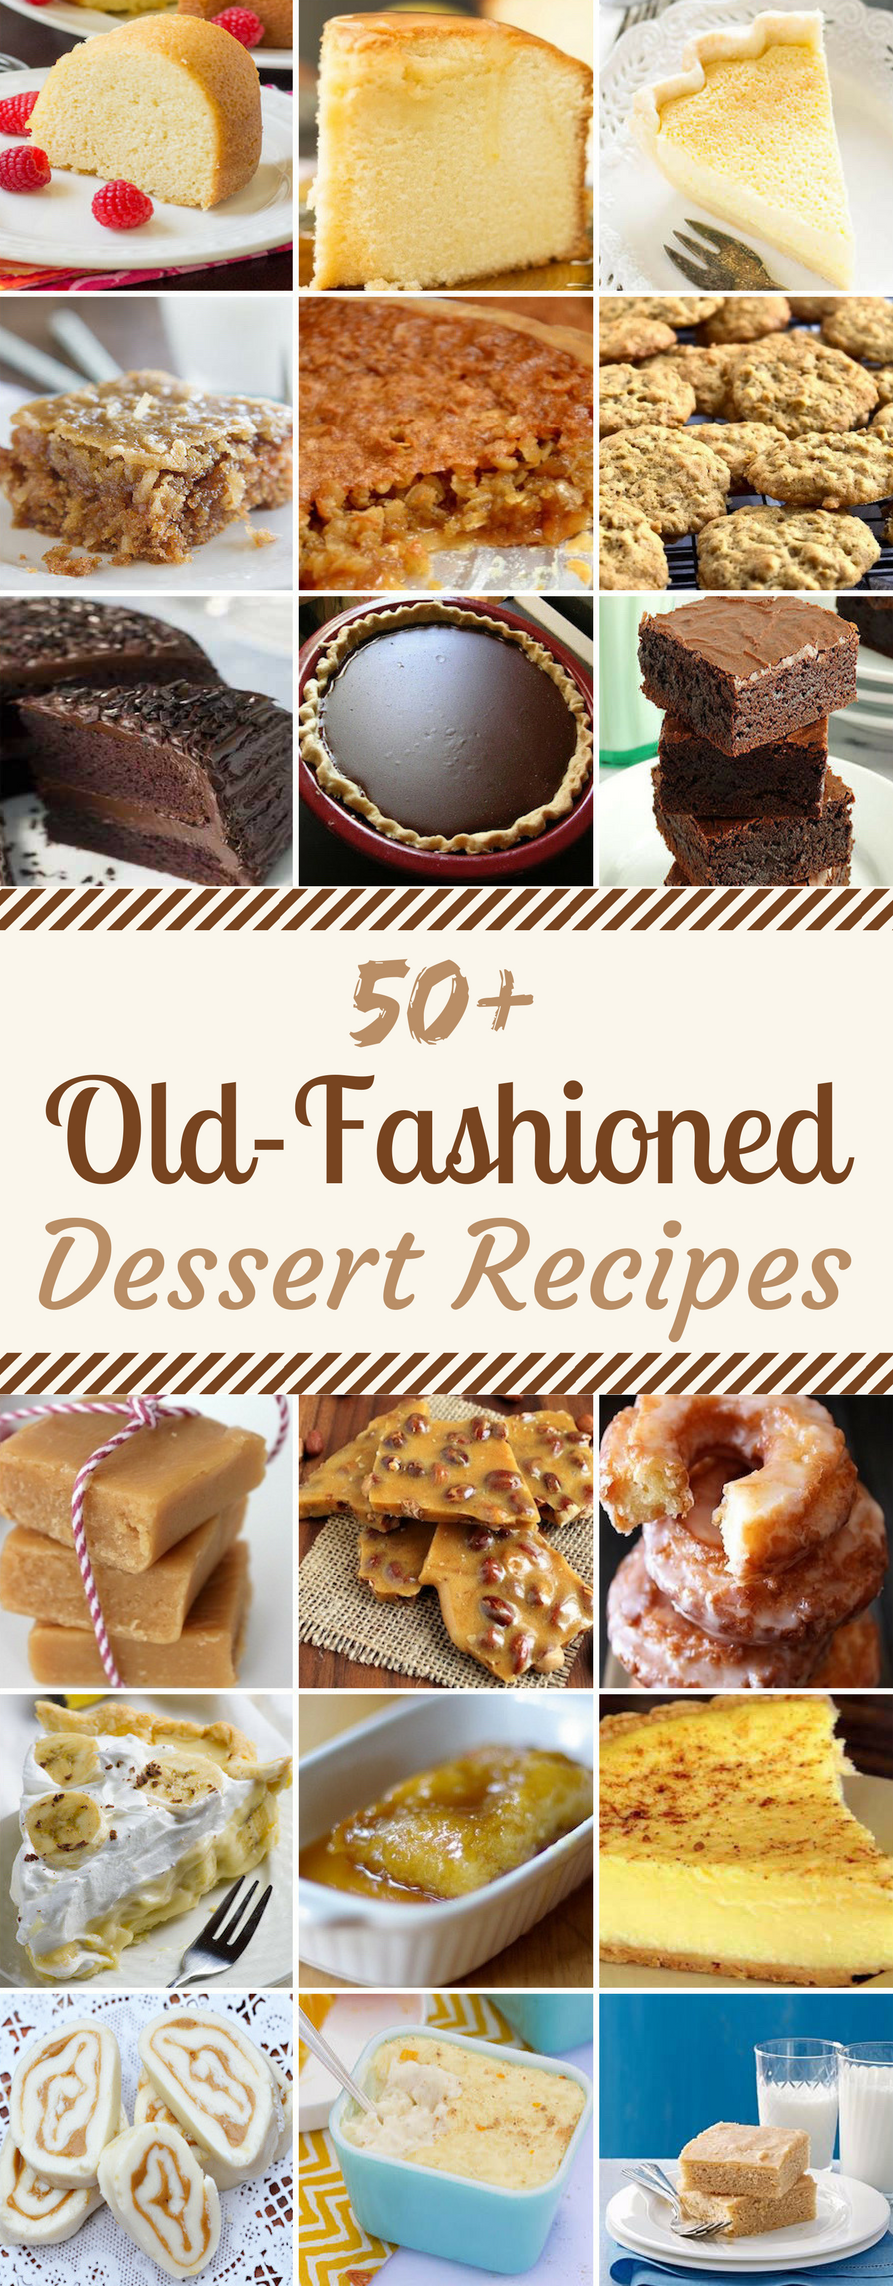 50 old fashioned dessert recipes   prudent penny pincher